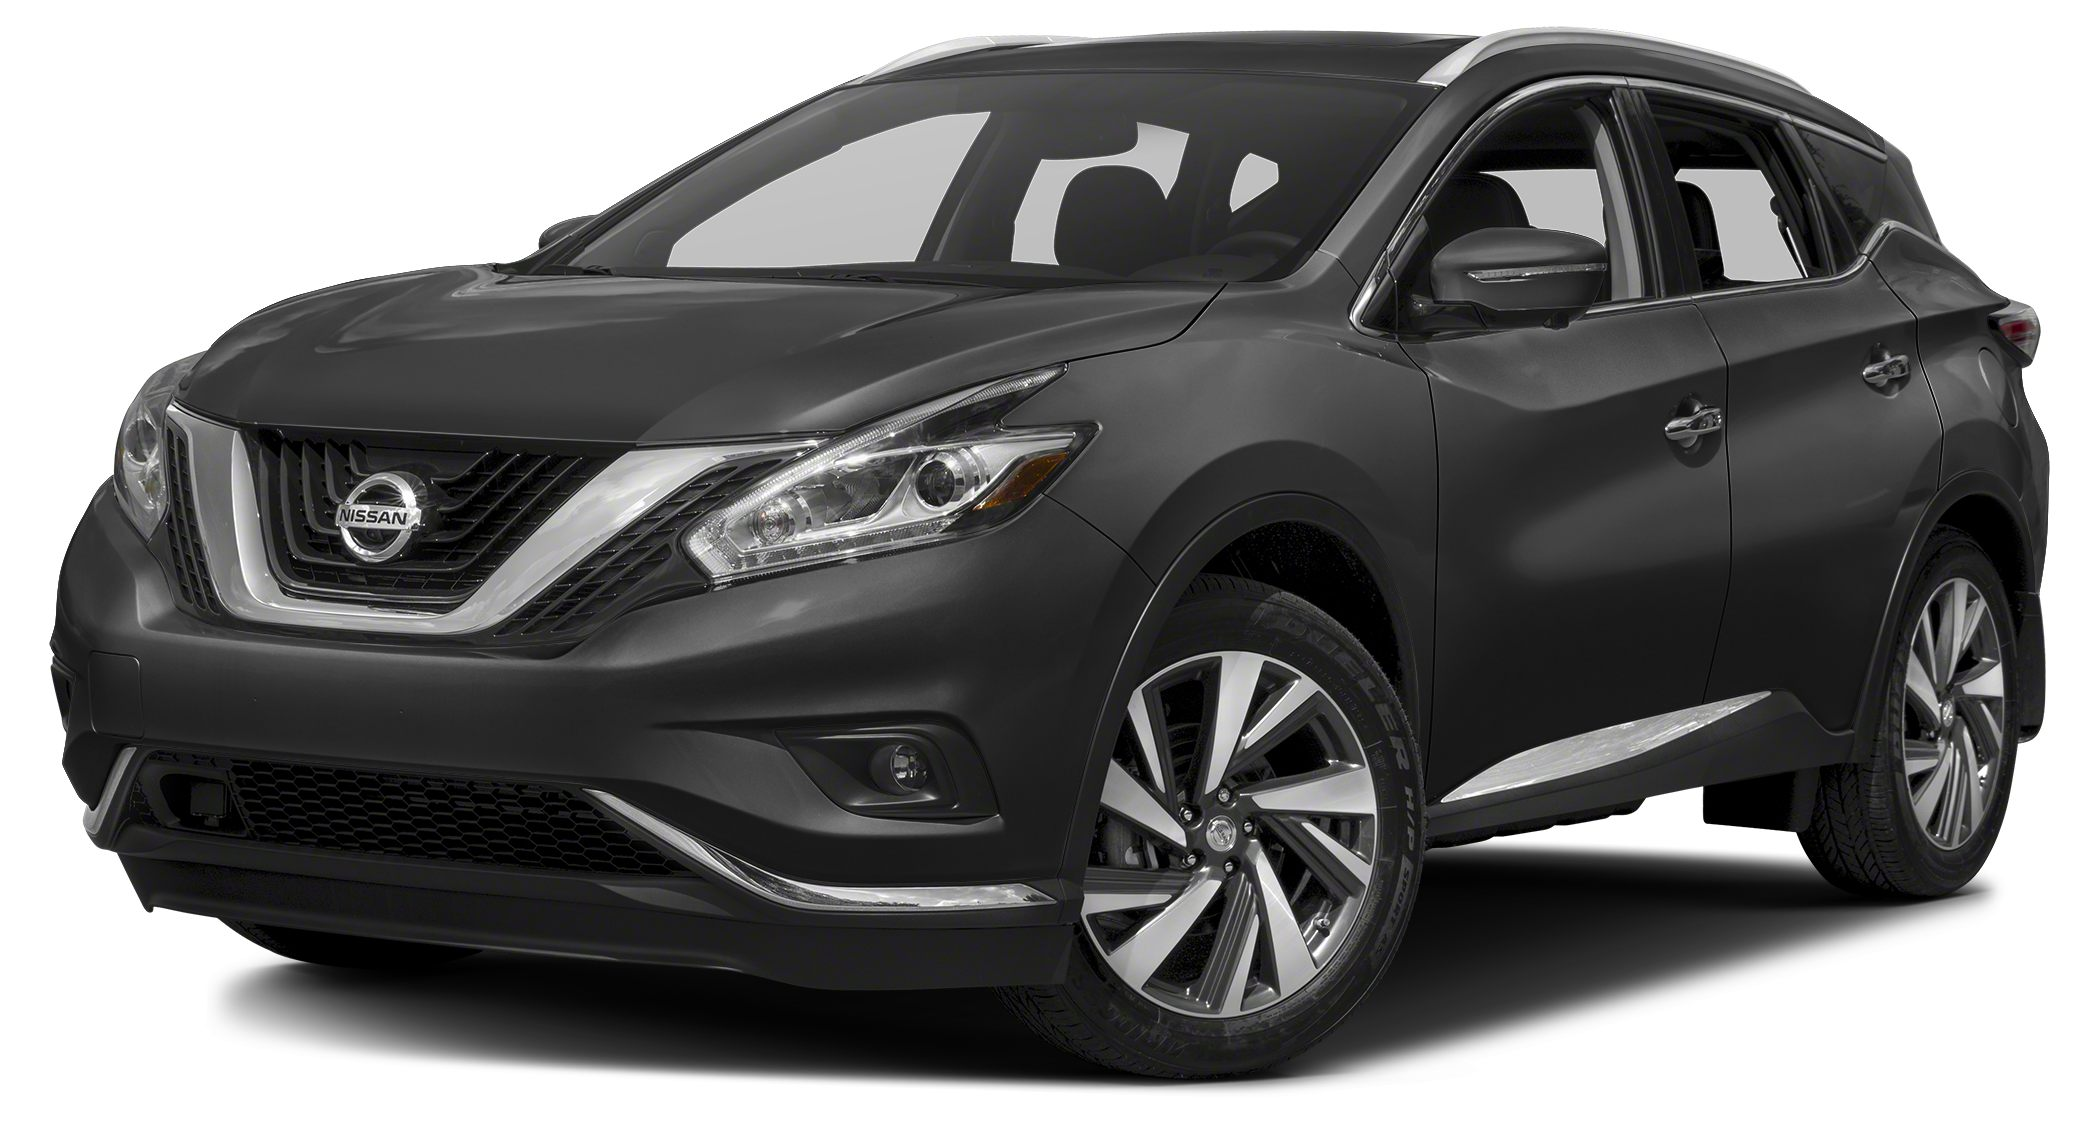 2015 Nissan Murano SL Priced below Market Navigation Bluetooth Auto Climate Control Leather St